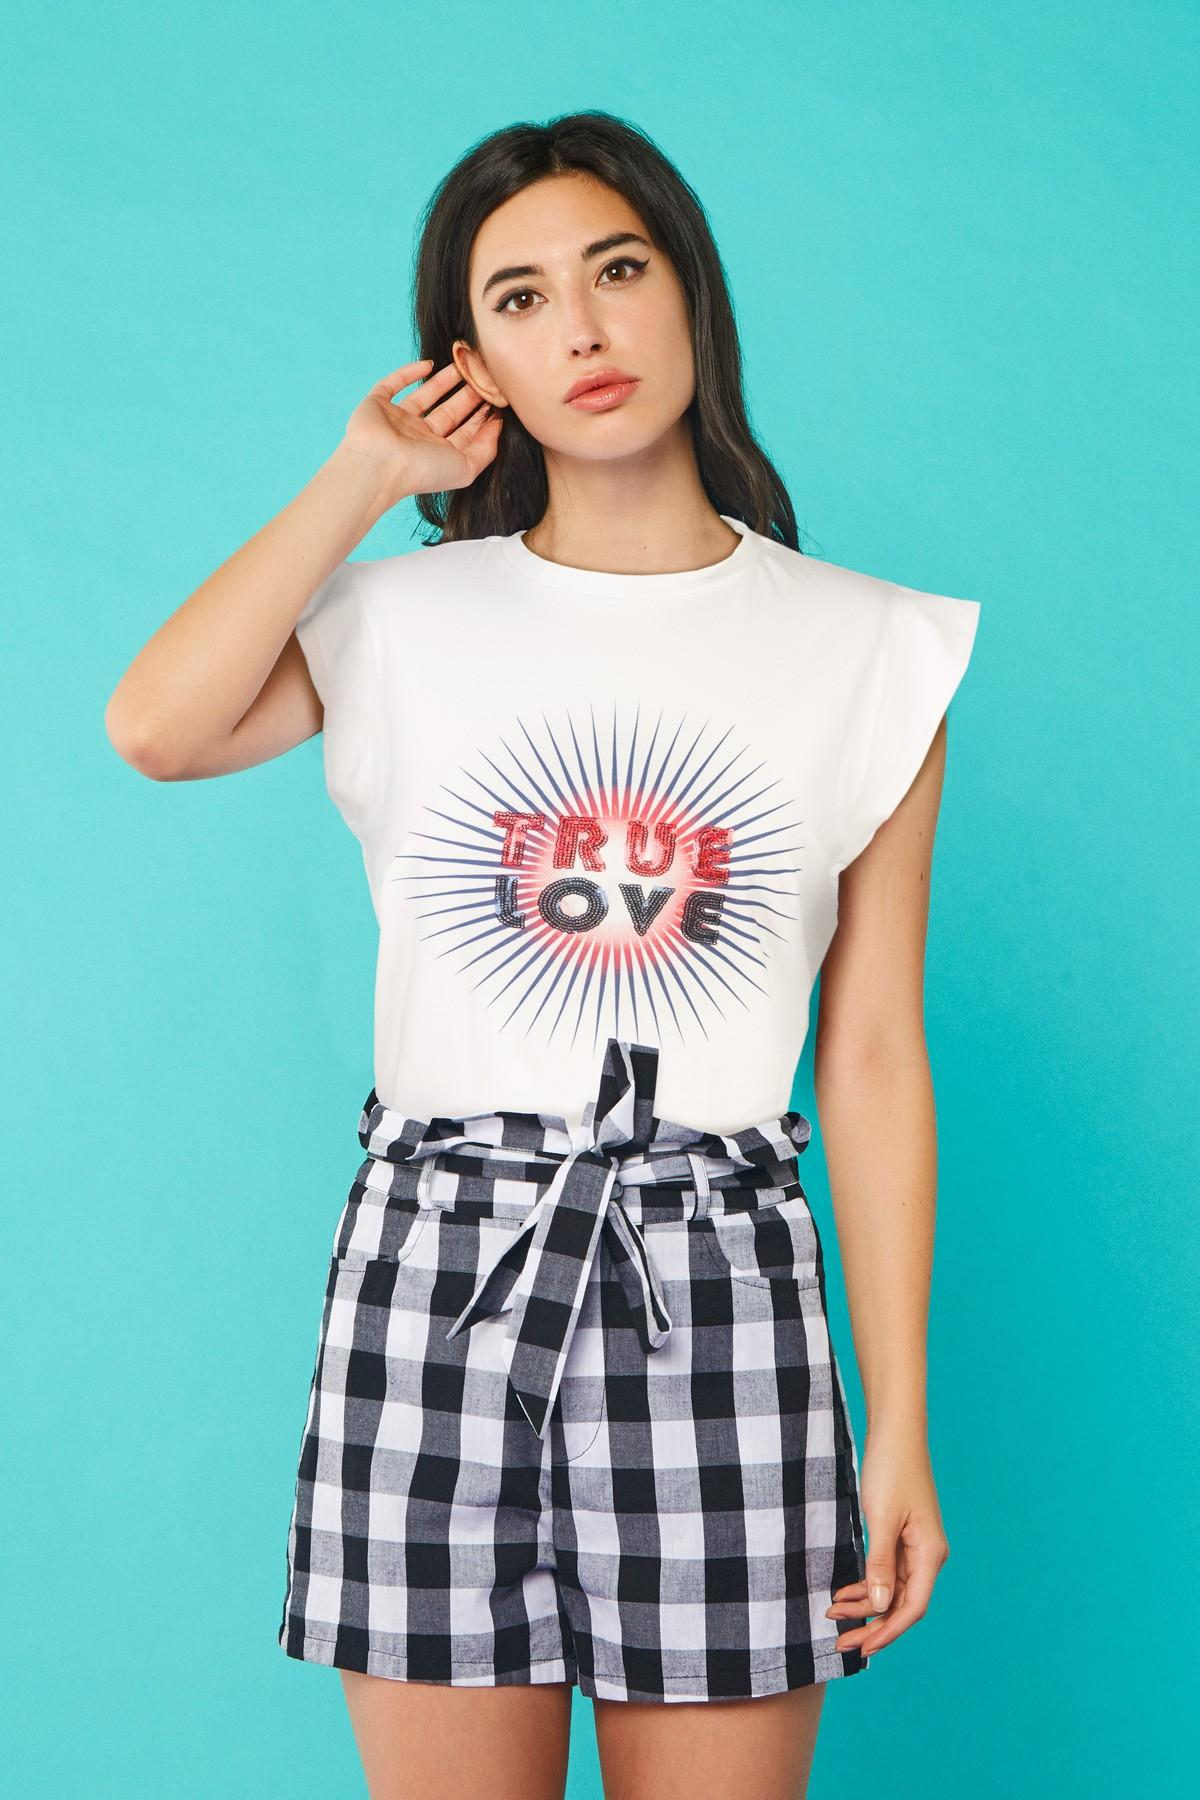 CAMISETA TRUE LOVE, MINUETO, REF. 211065